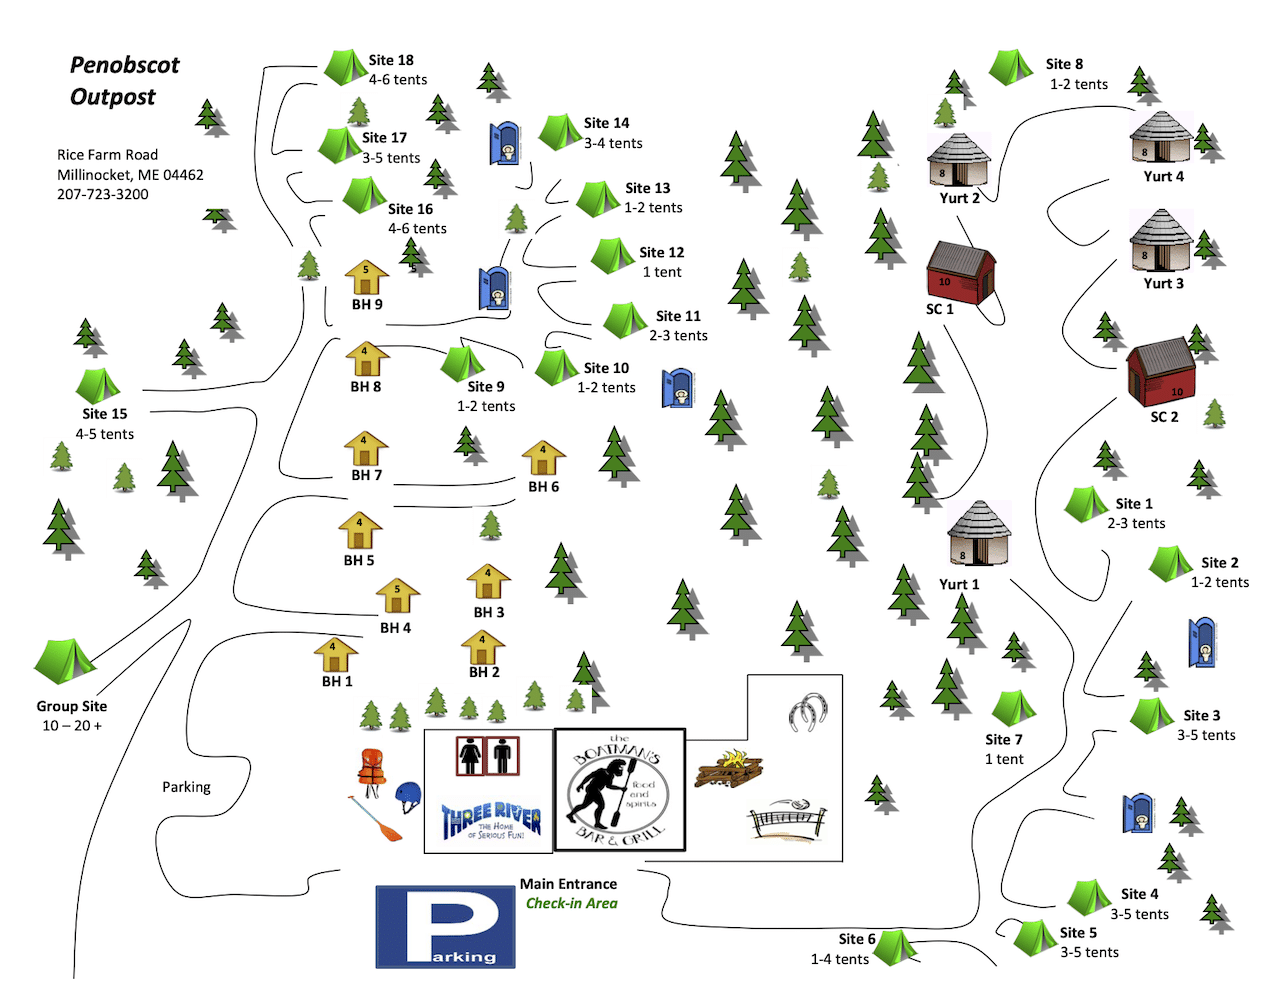 Penobscot River Outpost Campground Map